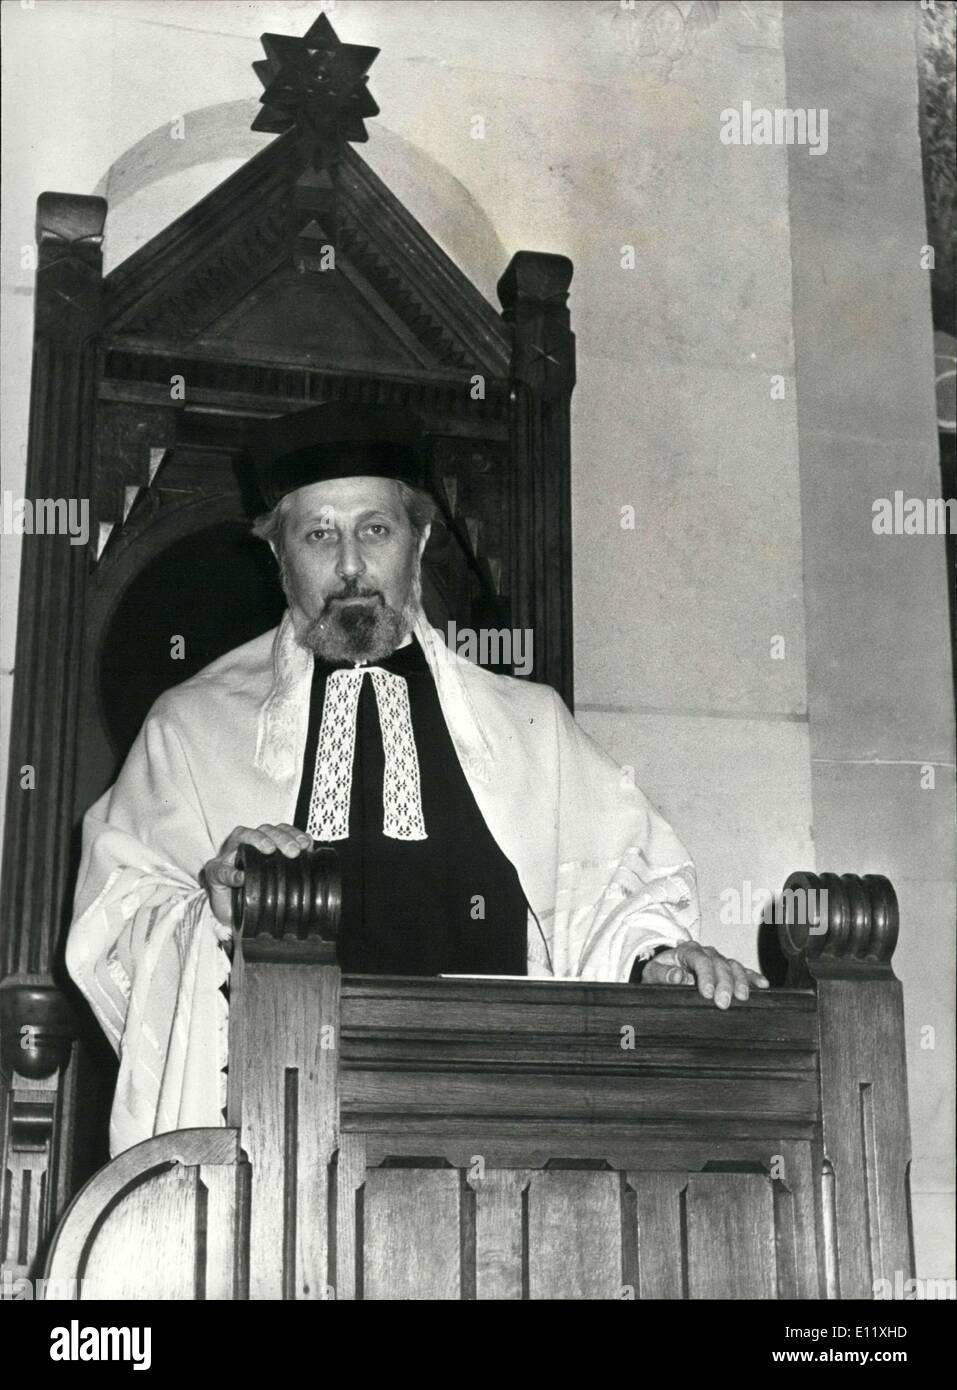 Oct. 24, 1980 - Alain Goldmann, Paris's new rabbi, sits in his chair during a ceremony in the synagogue on Rue de la Victoire. - Stock Image